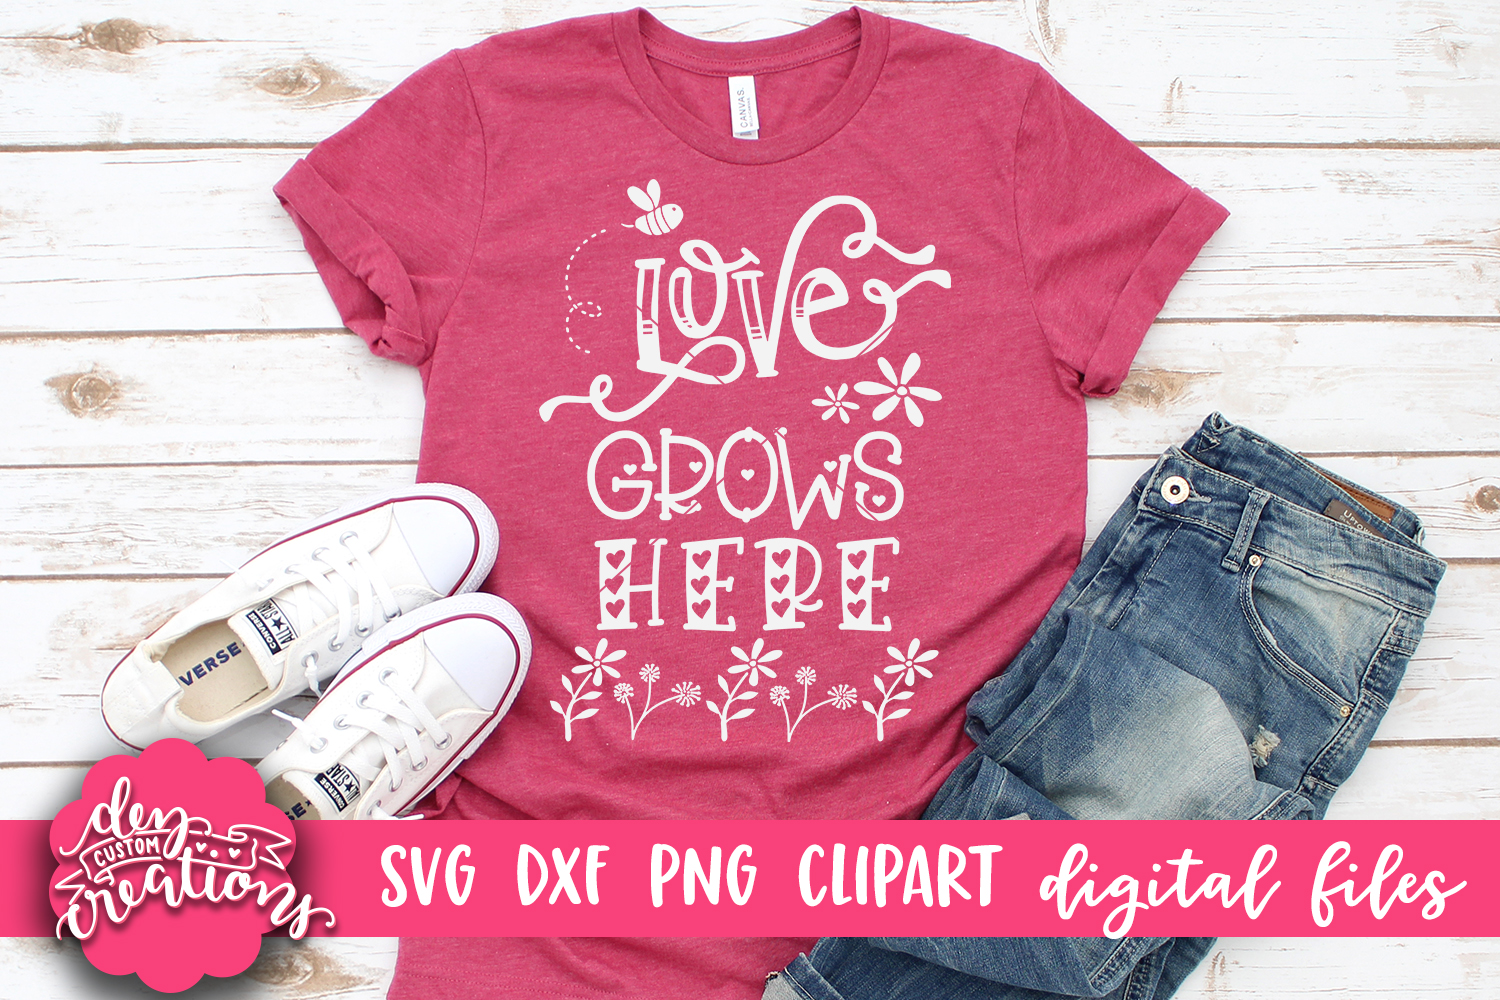 Love Grows Here 2- SVG DXF PNG - Crafting Cut Files example image 2